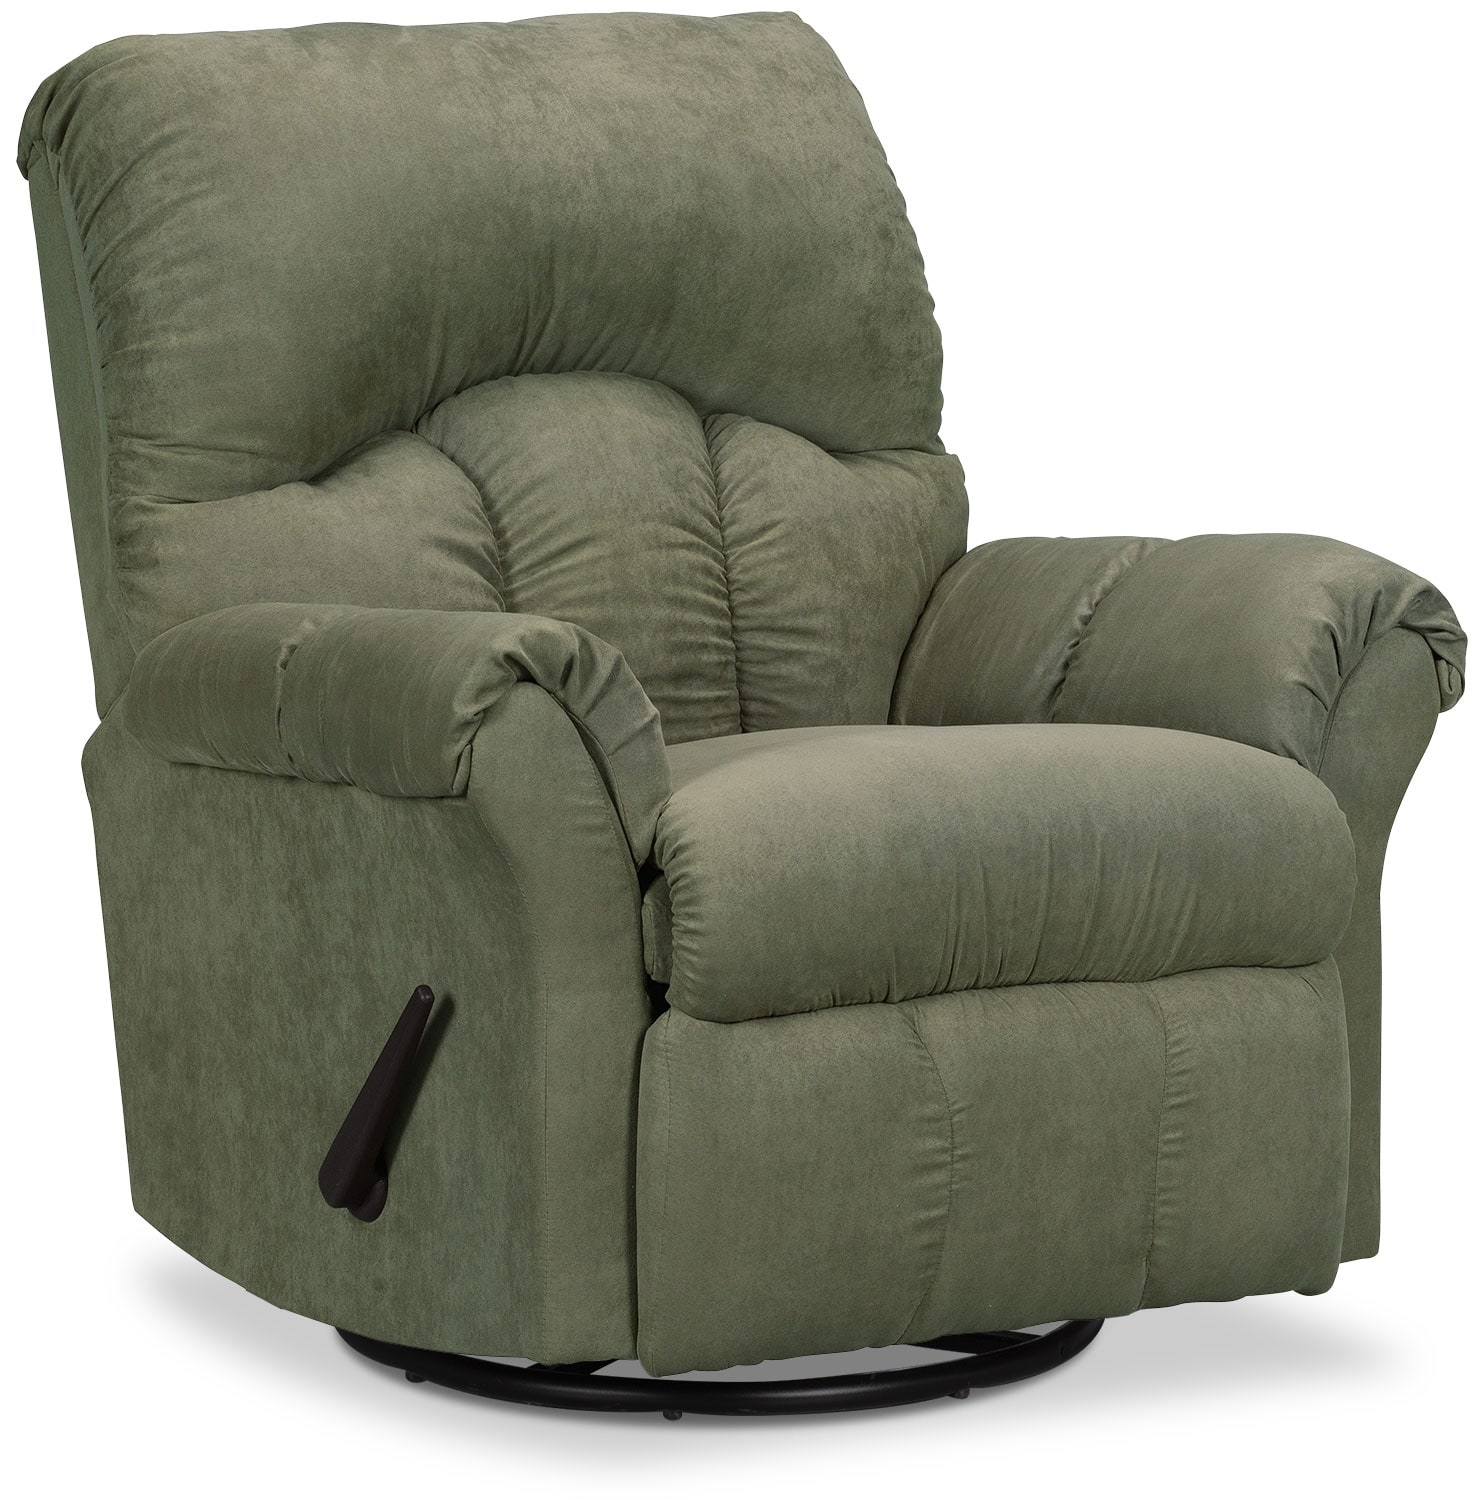 Living Room Furniture - Designed2B Recliner 6734 Microsuede Swivel Glider Chair - Fern